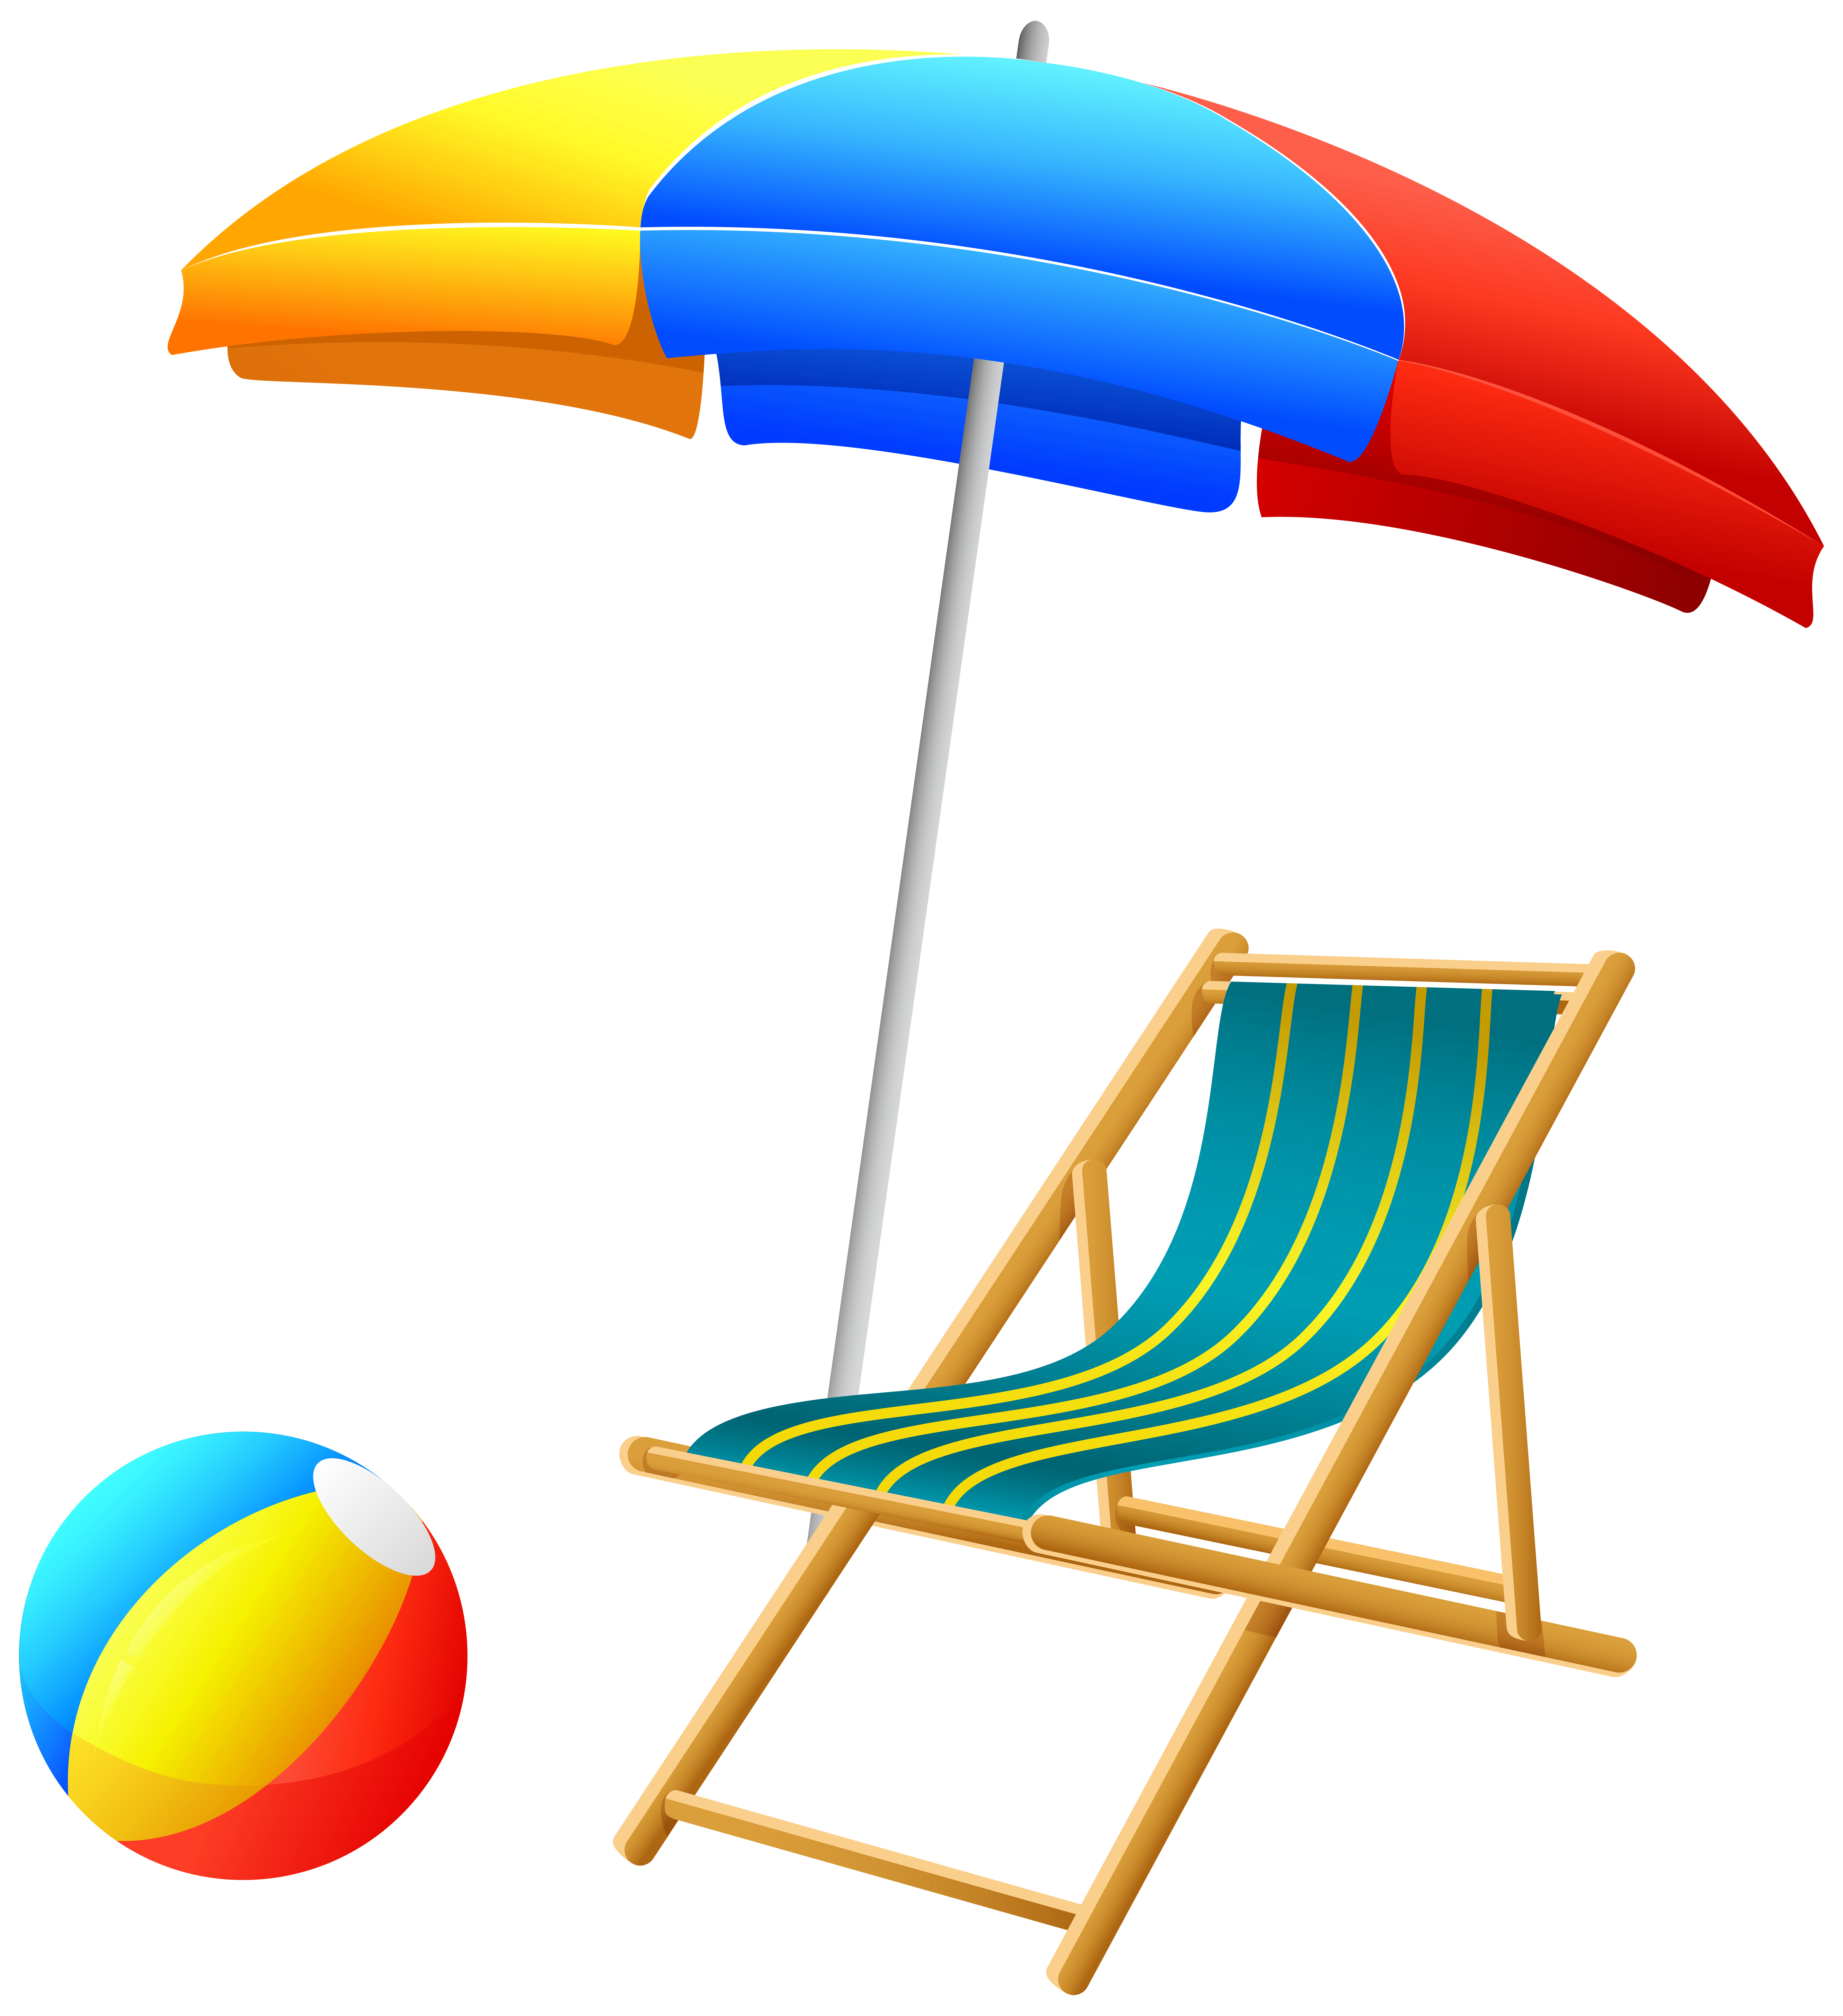 Umbrella clipart unbrella. Beach with chair and